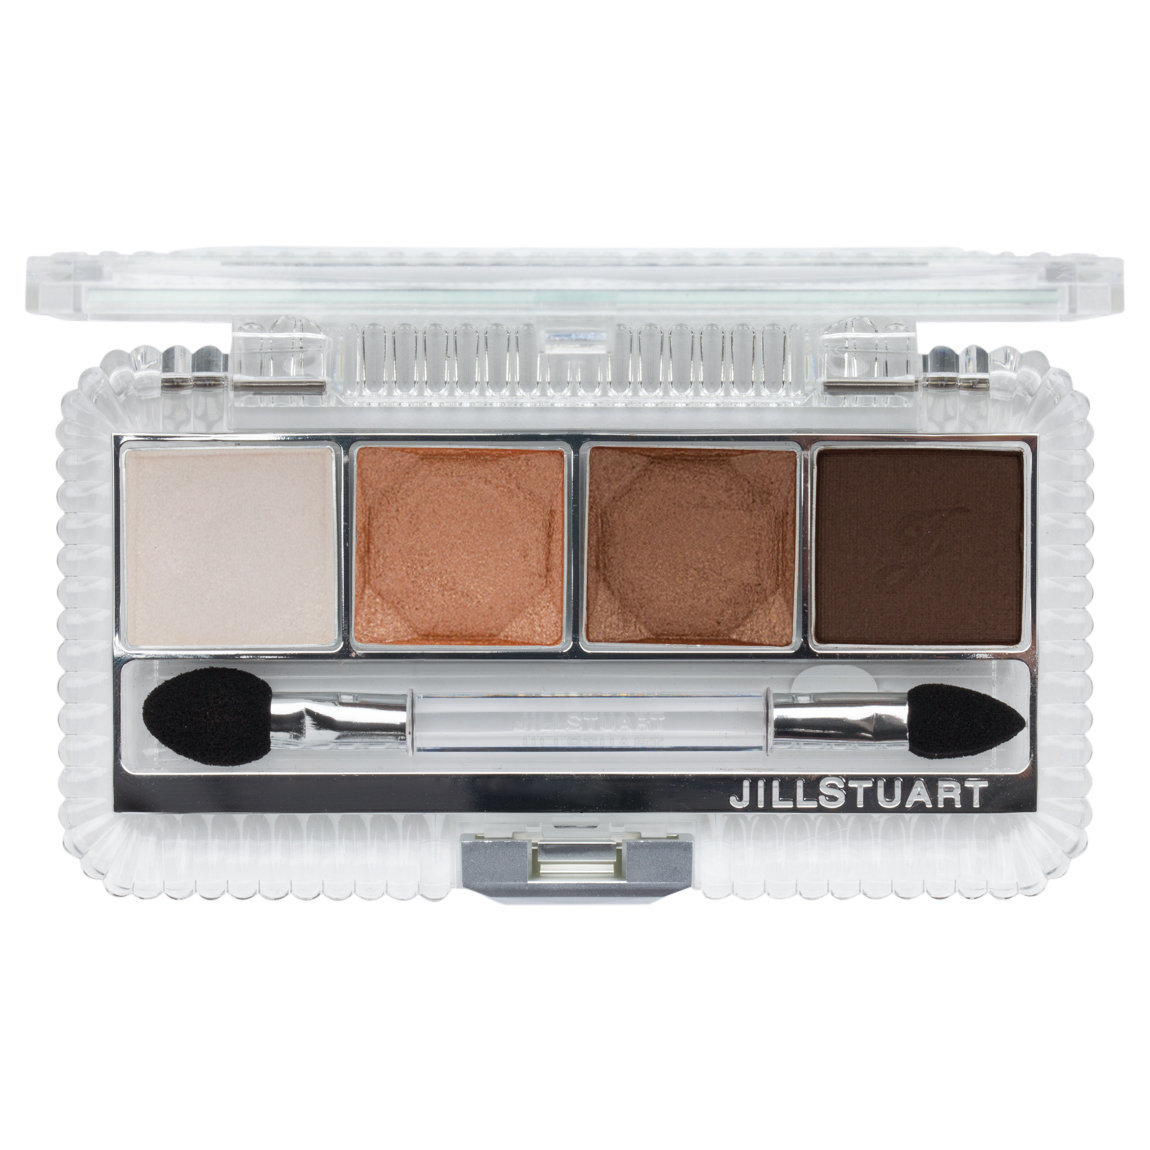 JILL STUART Beauty Eternal Couture Eyes Velvet product smear.